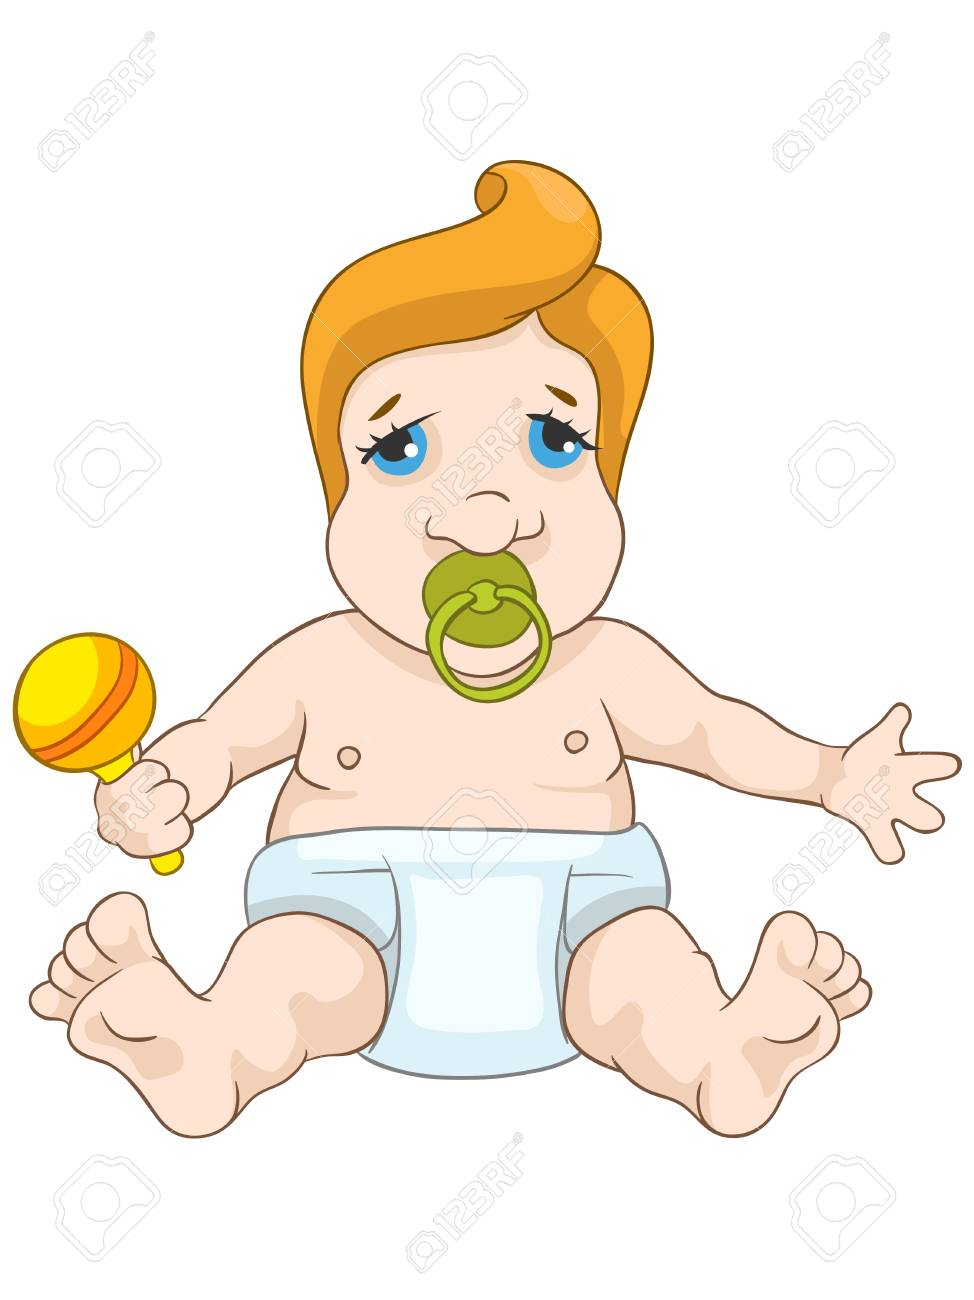 Cute Baby Isolated on White Background. Stock Vector - 20633247